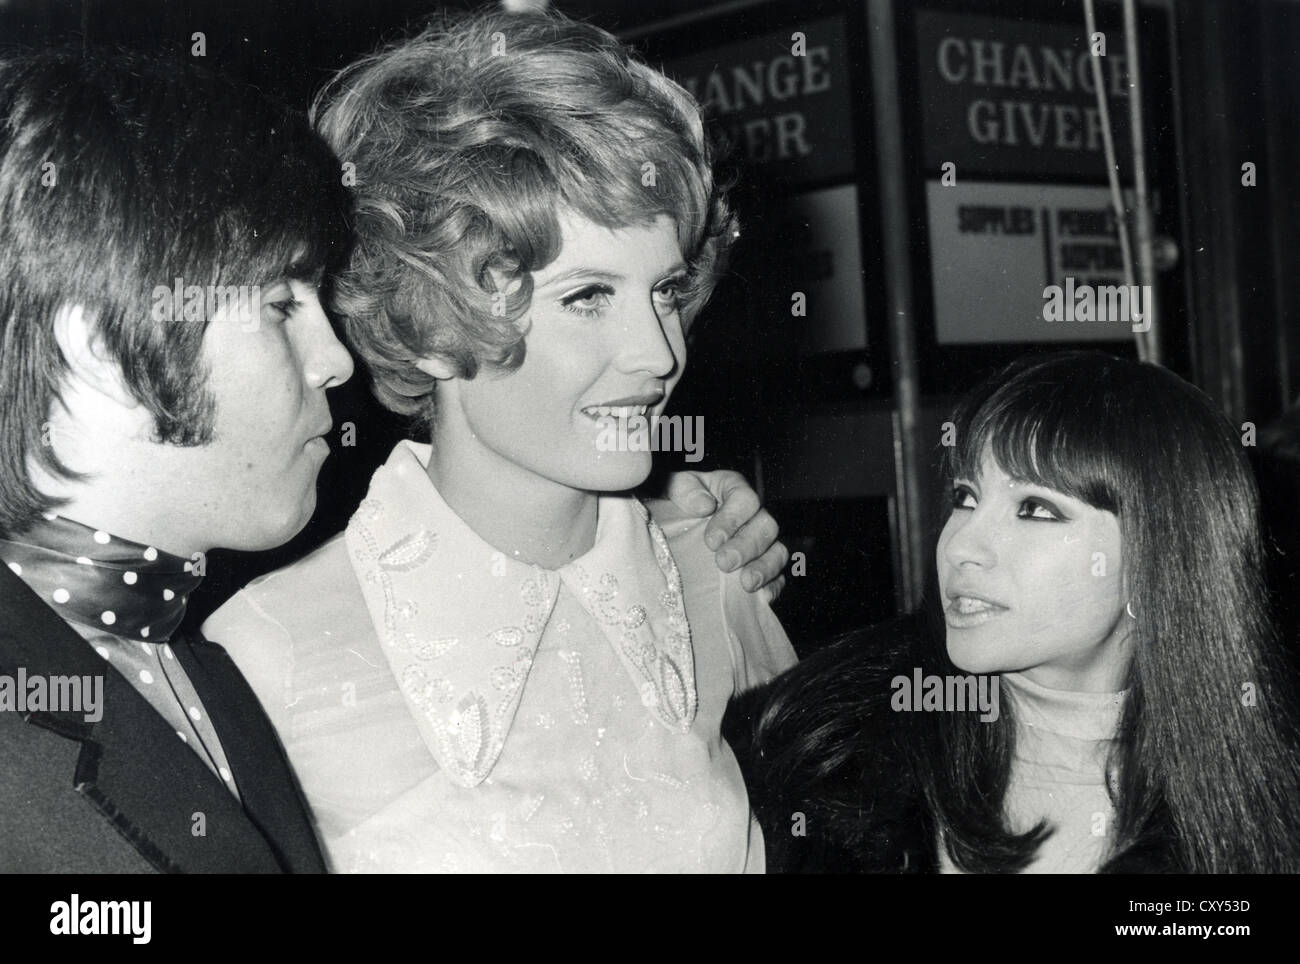 SANDIE SHAW  UK pop singer at 21st birthday party, February 1968, with Esther and Abi Ofarim. Photo Tony Gale Stock Photo